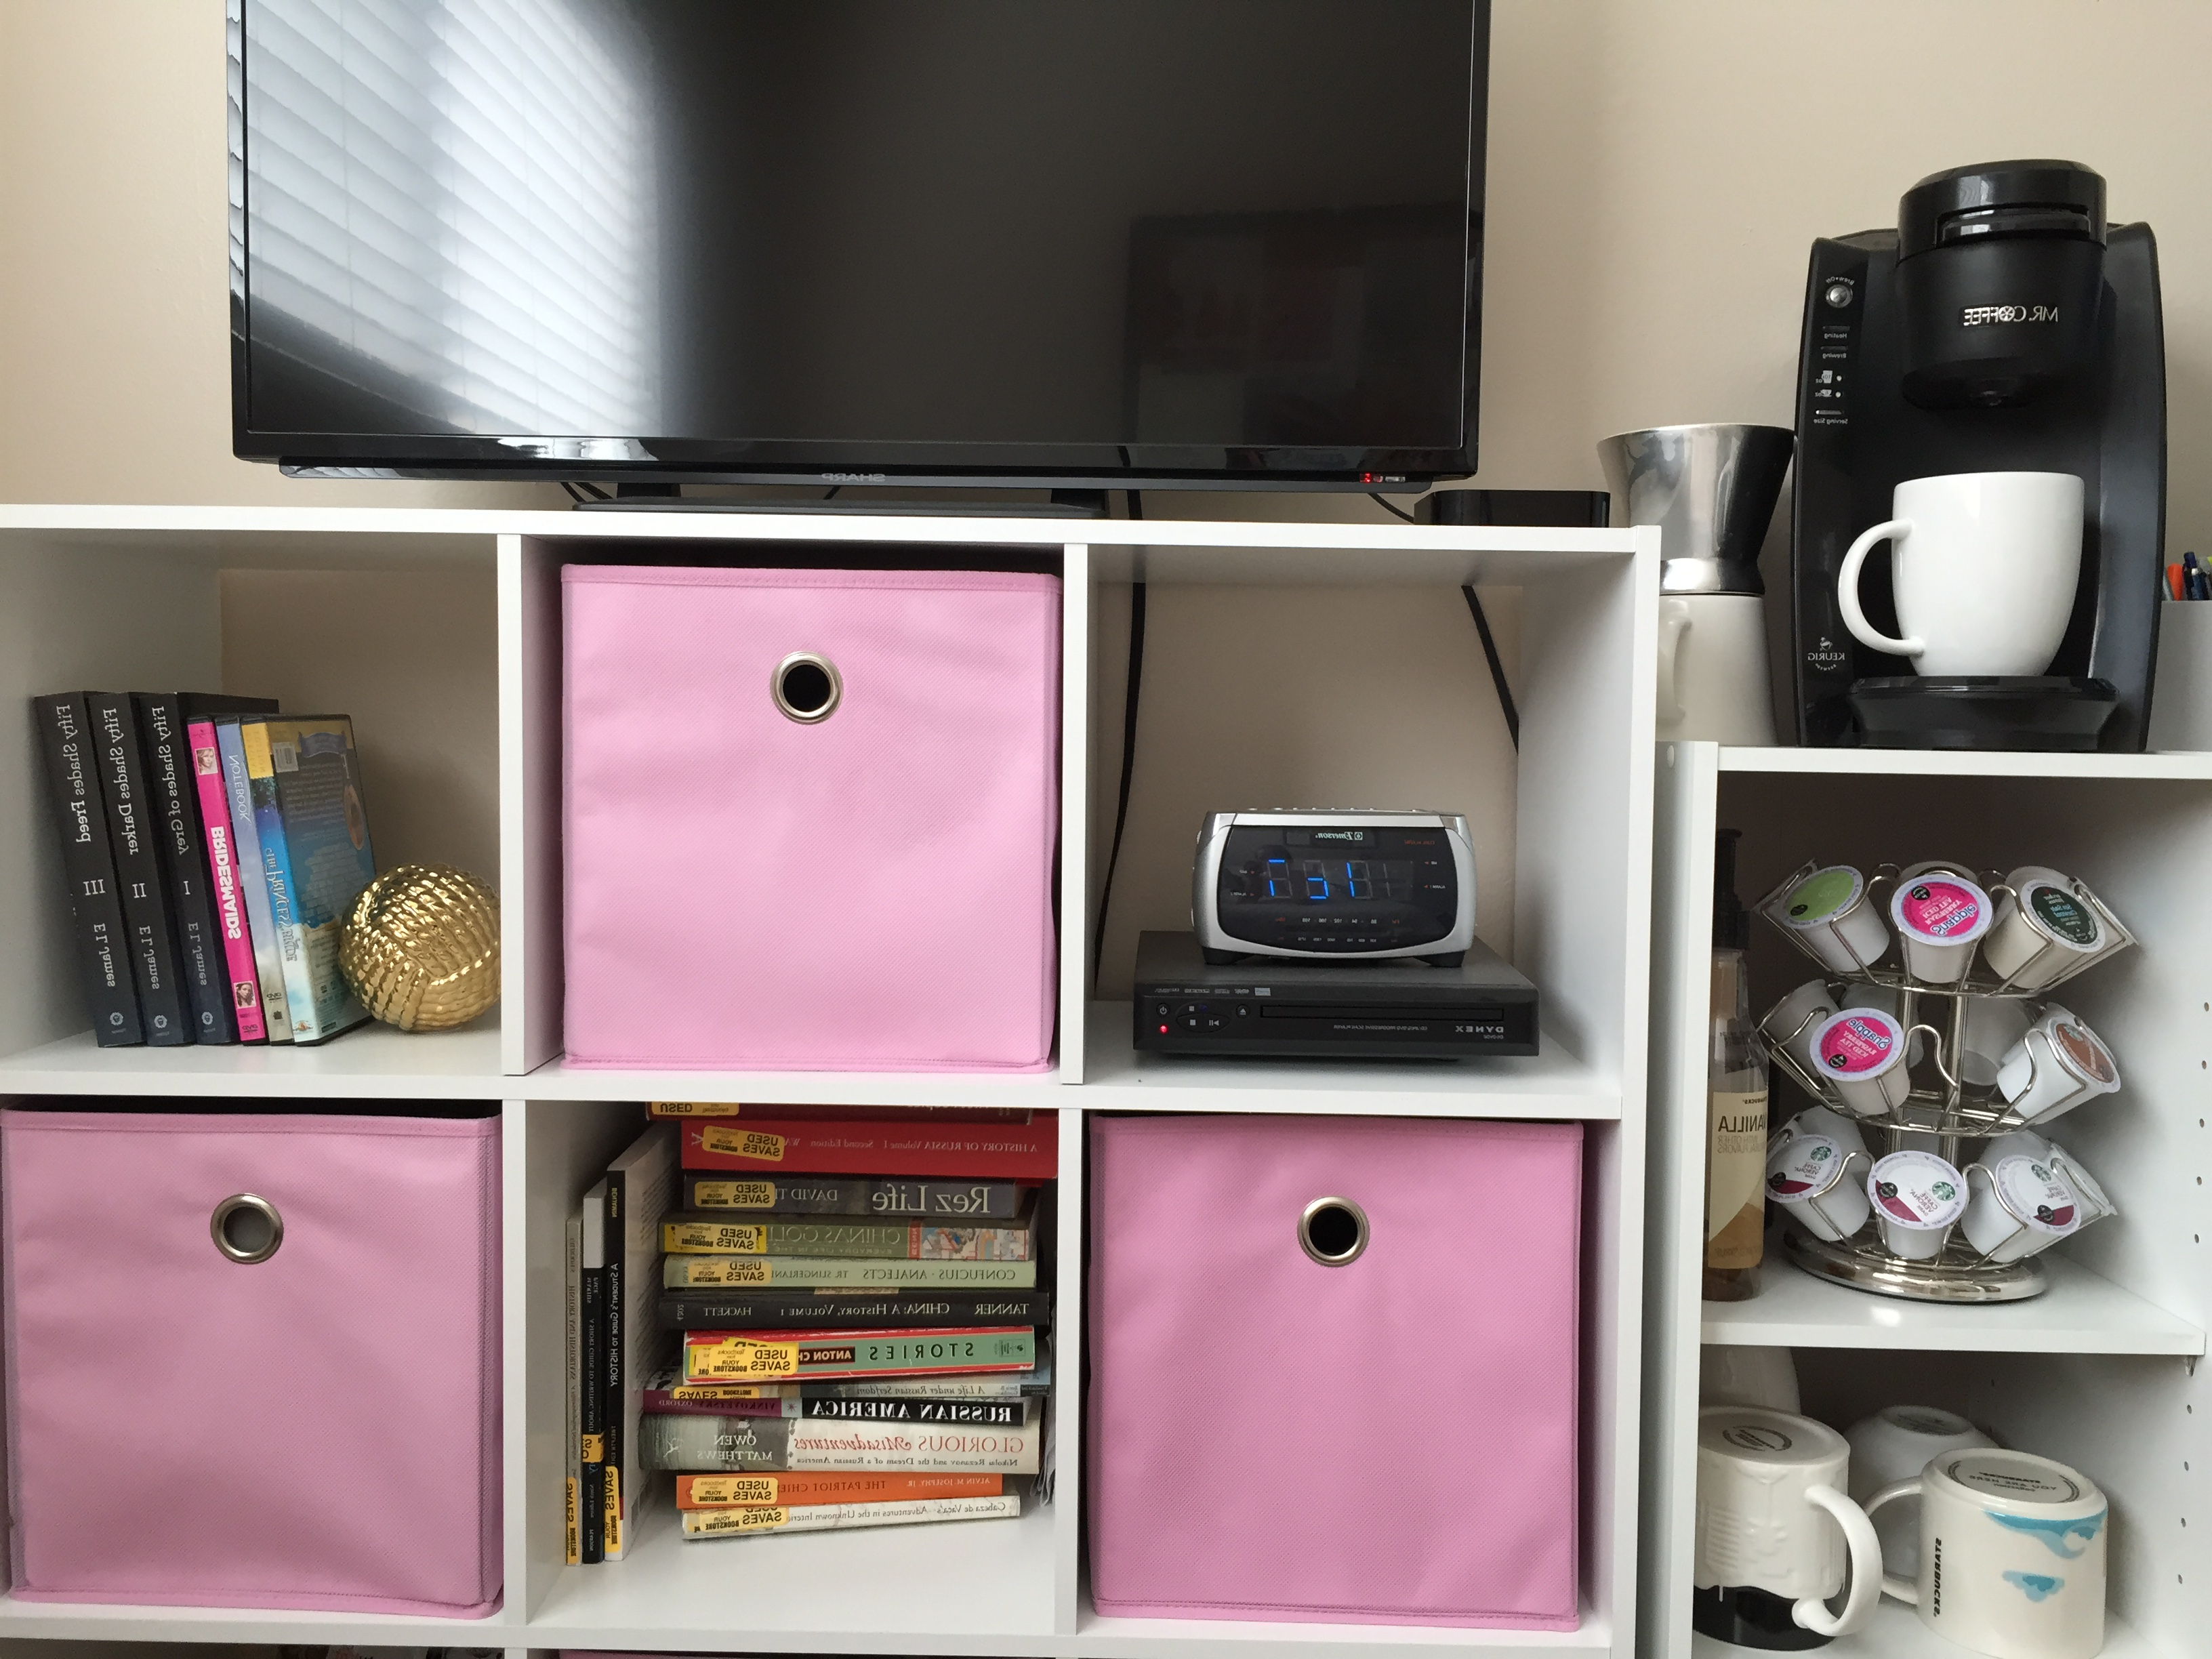 Fashionable Tv Stands With Baskets Within Tv Stands. 10 Awesome Design Flat Screen Tall Tv Stand For Bedroom (Gallery 11 of 20)